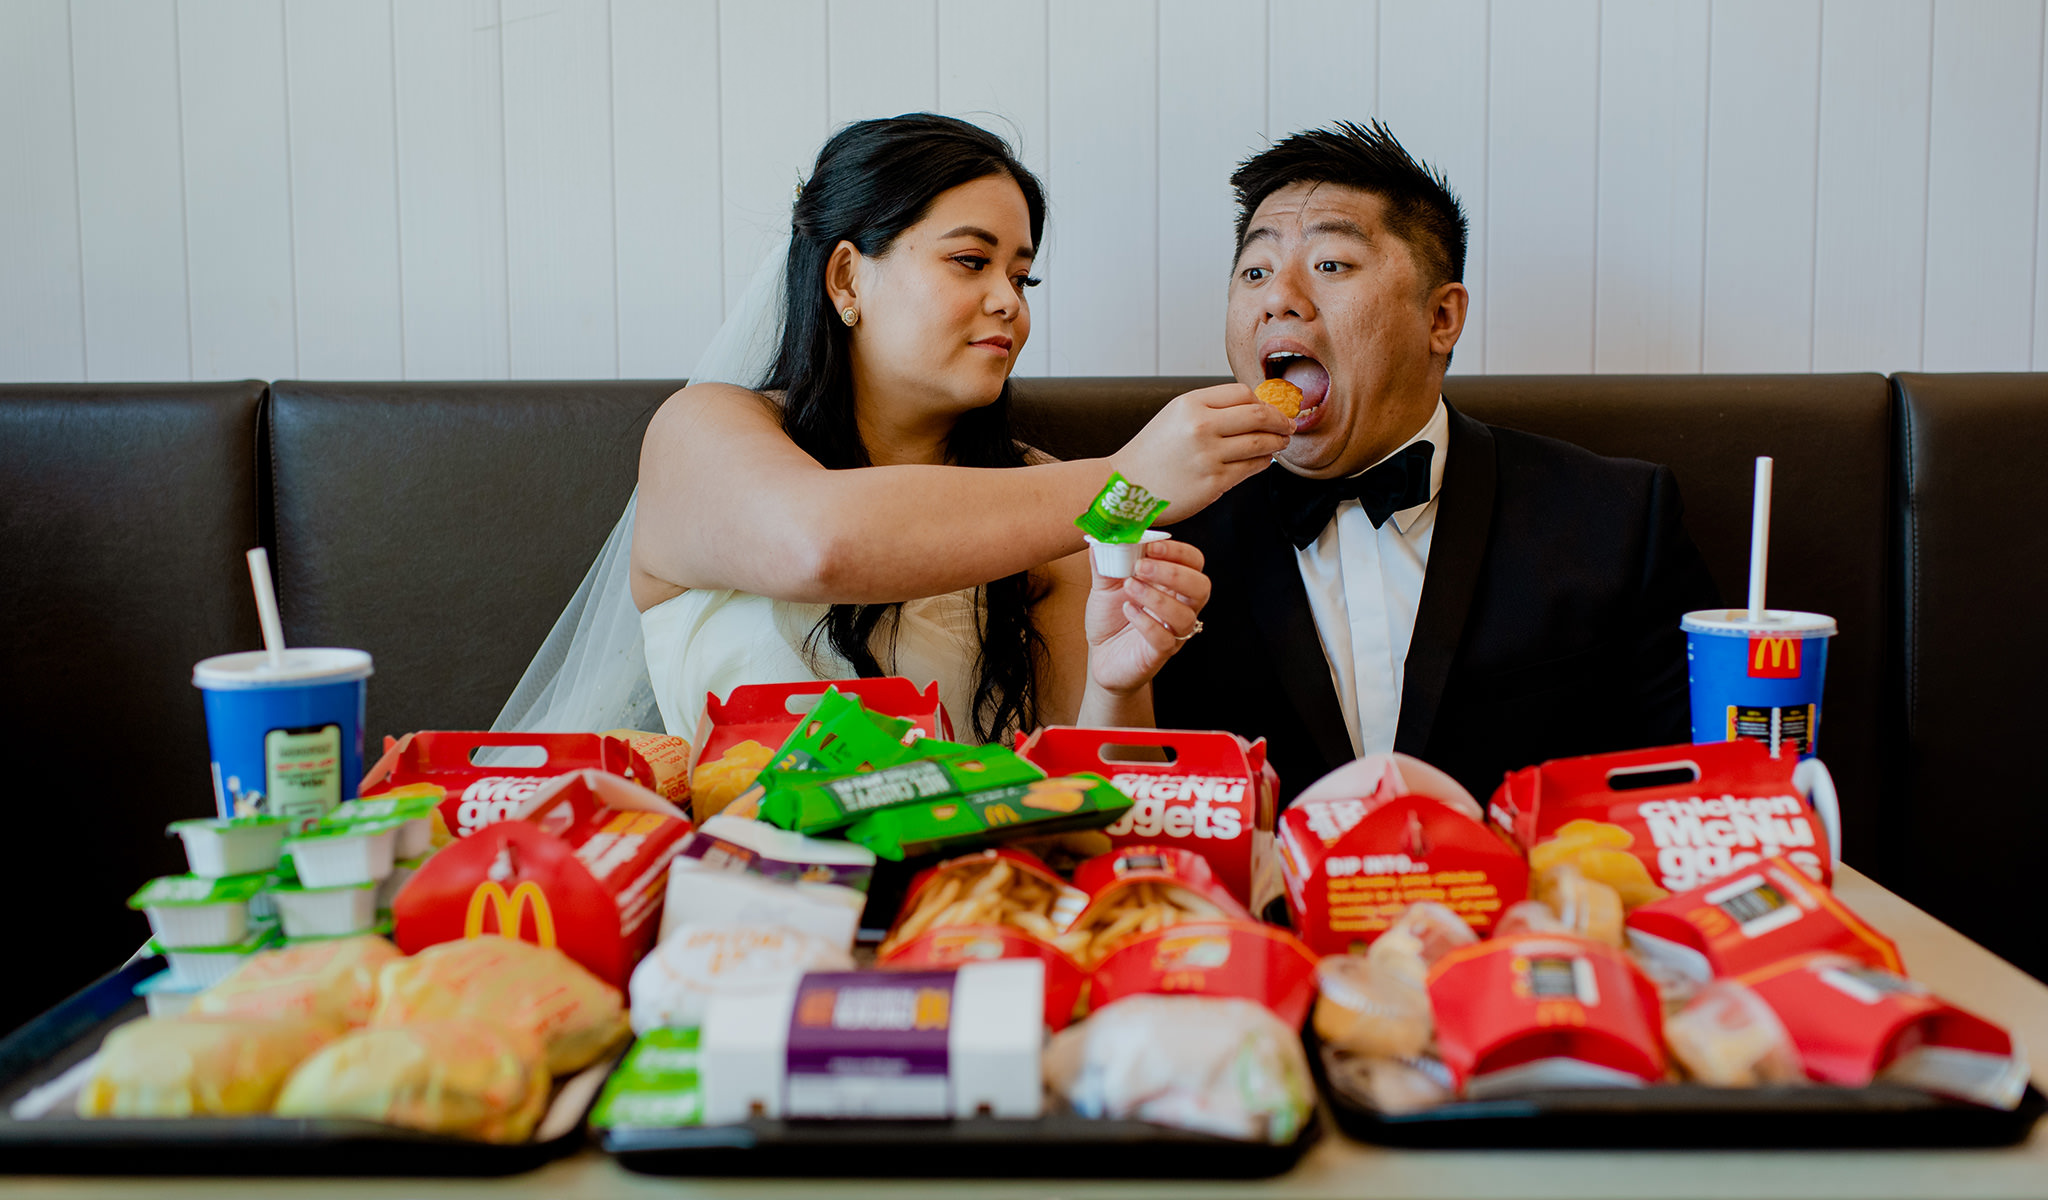 Bride feeds her husband a chicken nugget as they sit in front of tables full of fast food